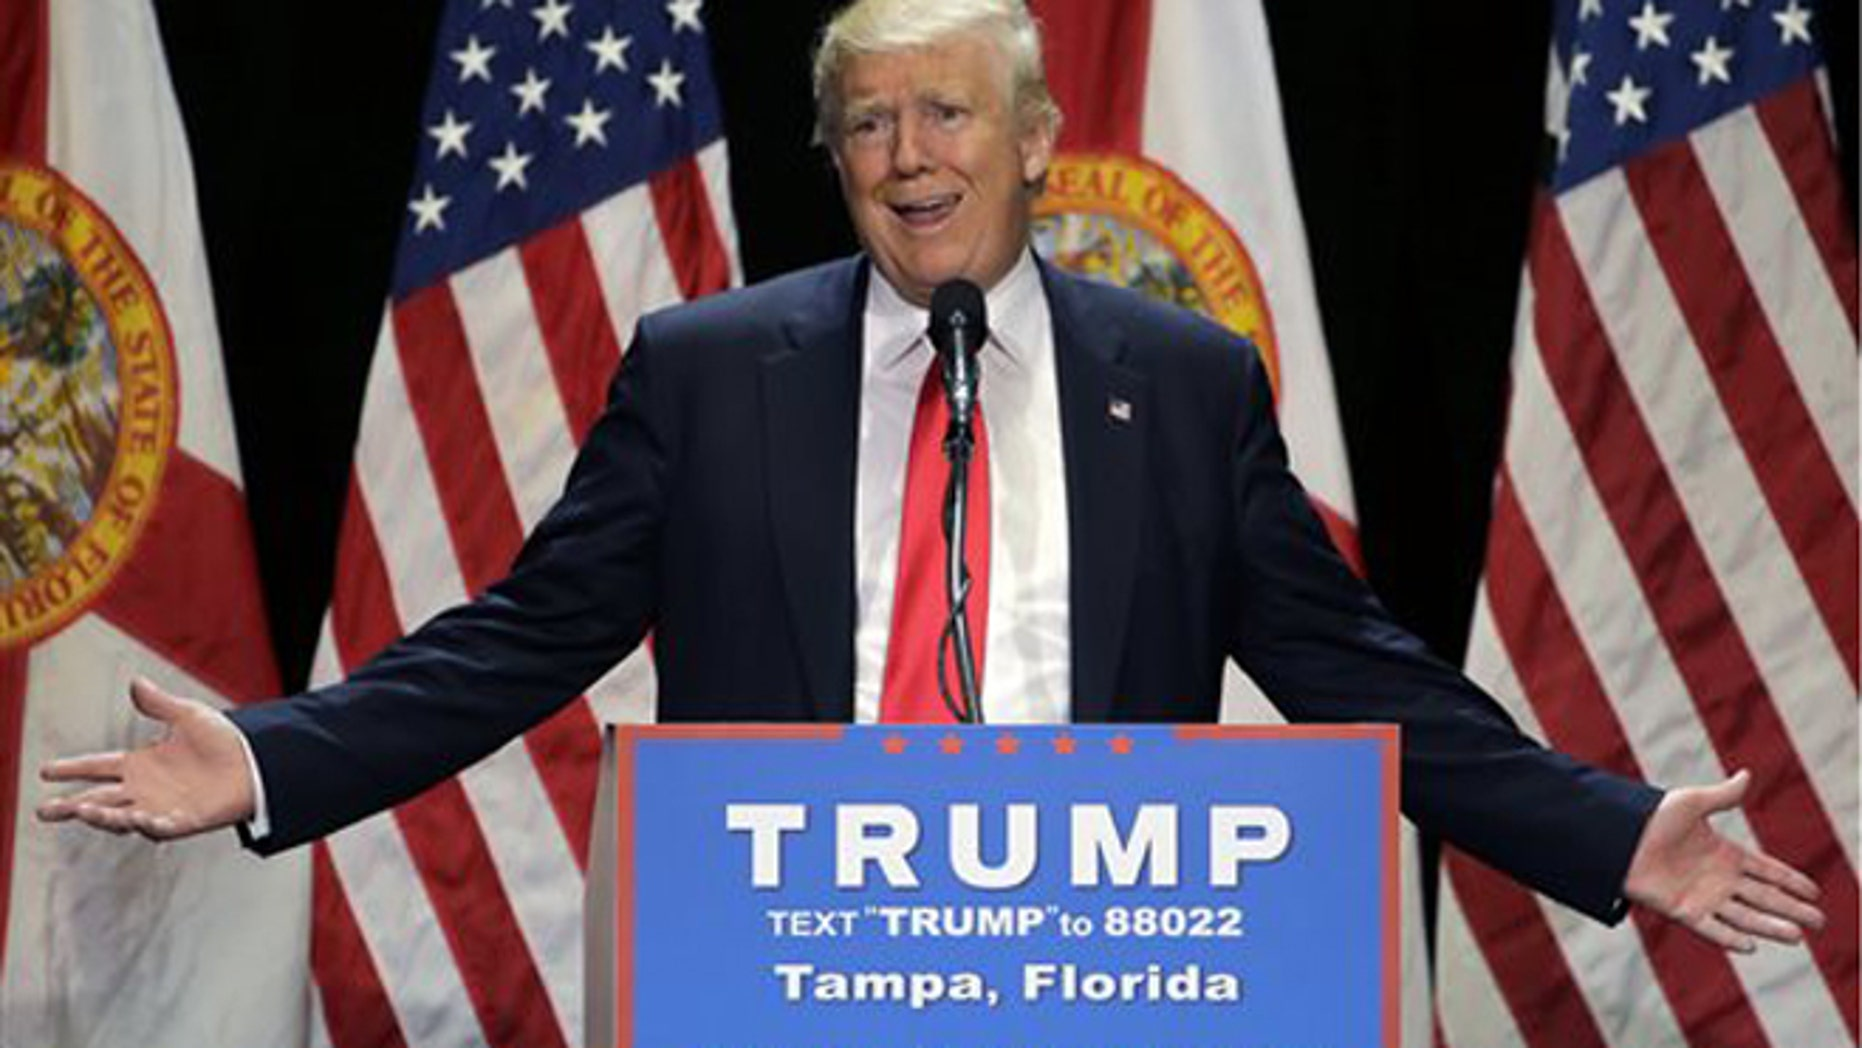 File- This June 11, 2016 file photo shows Republican presidential candidate Donald Trump gesturing during a campaign speech in Tampa, Fla. Trump plans Monday to further address the deadliest shooting in modern U.S. history in a campaign speech originally intended to attack the presumptive Democratic nominee, Hillary Clinton. The switch comes a day after Trump called for Clinton to drop out of the race for president if she didnt use the words radical Islam to describe the Florida nightclub massacre. (AP Photo/Chris O'Meara, File)